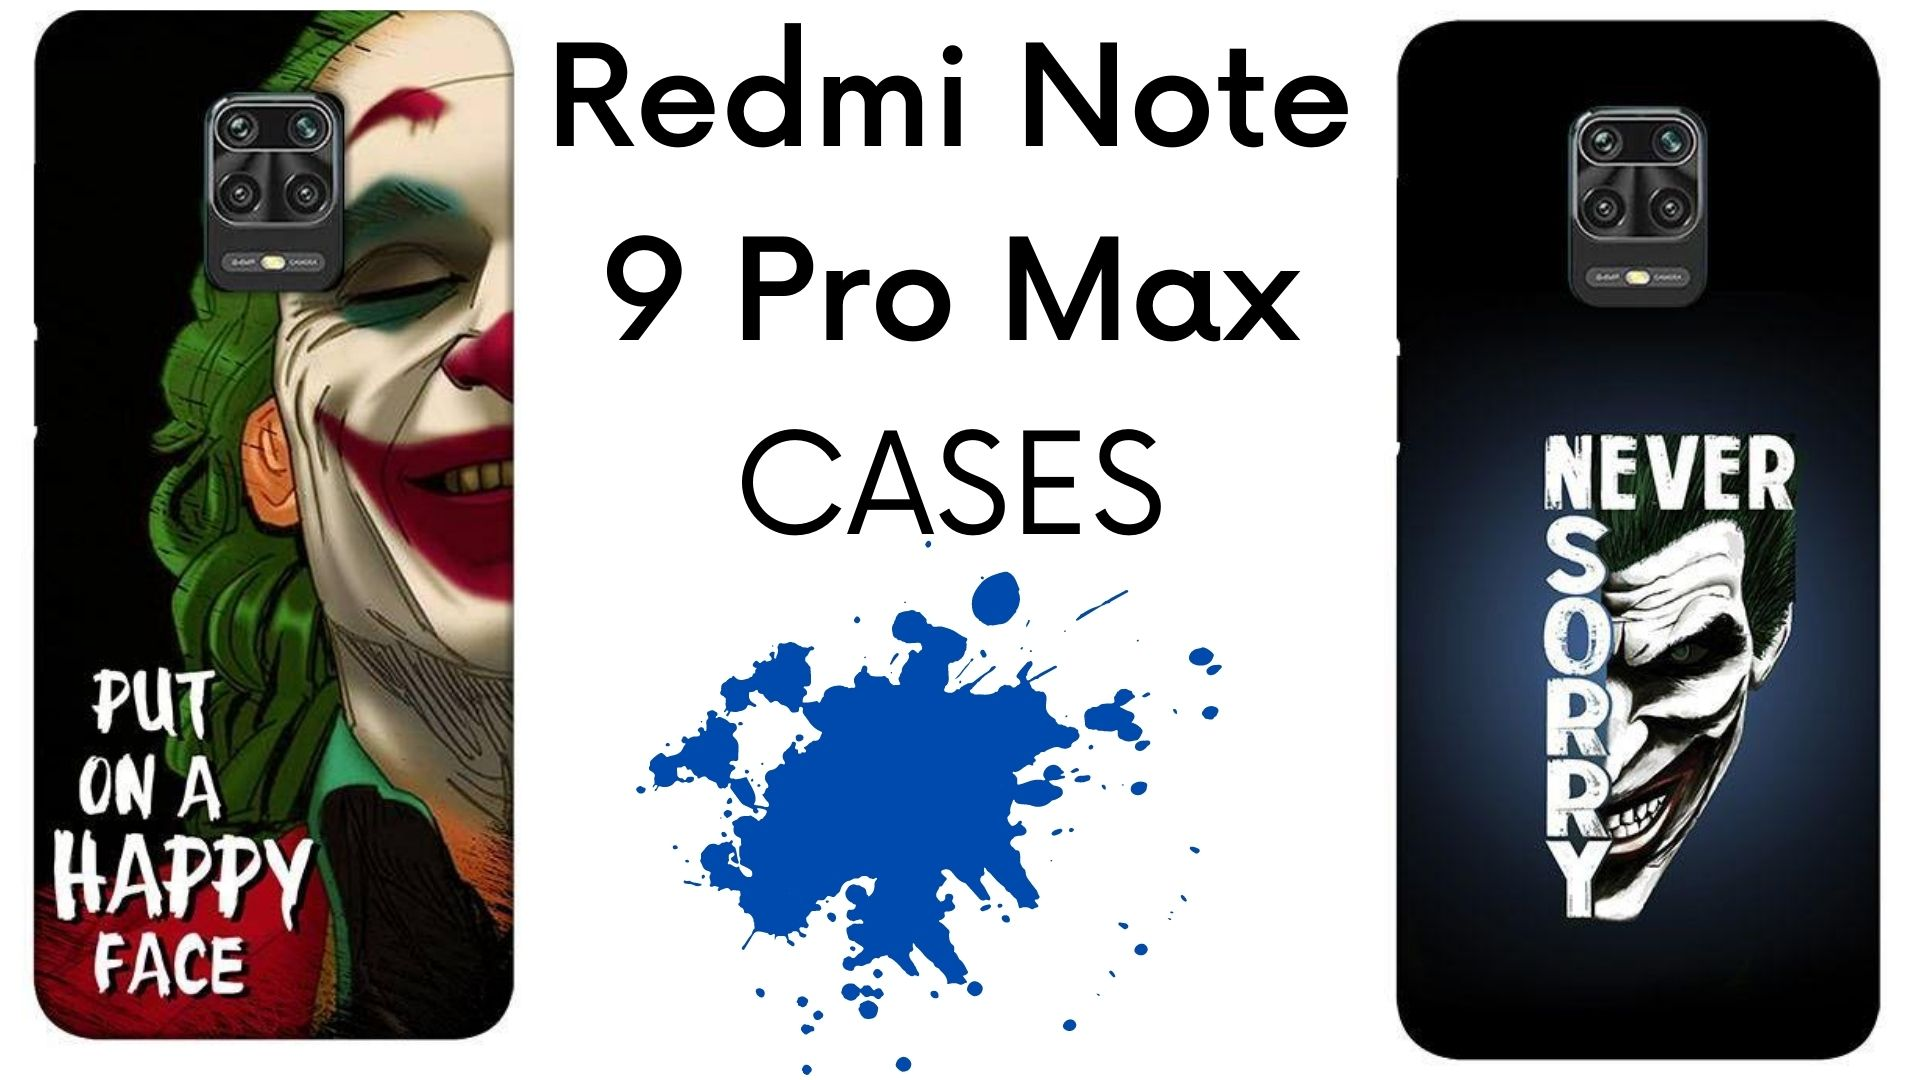 Redmi Note 9 Pro Max back covers